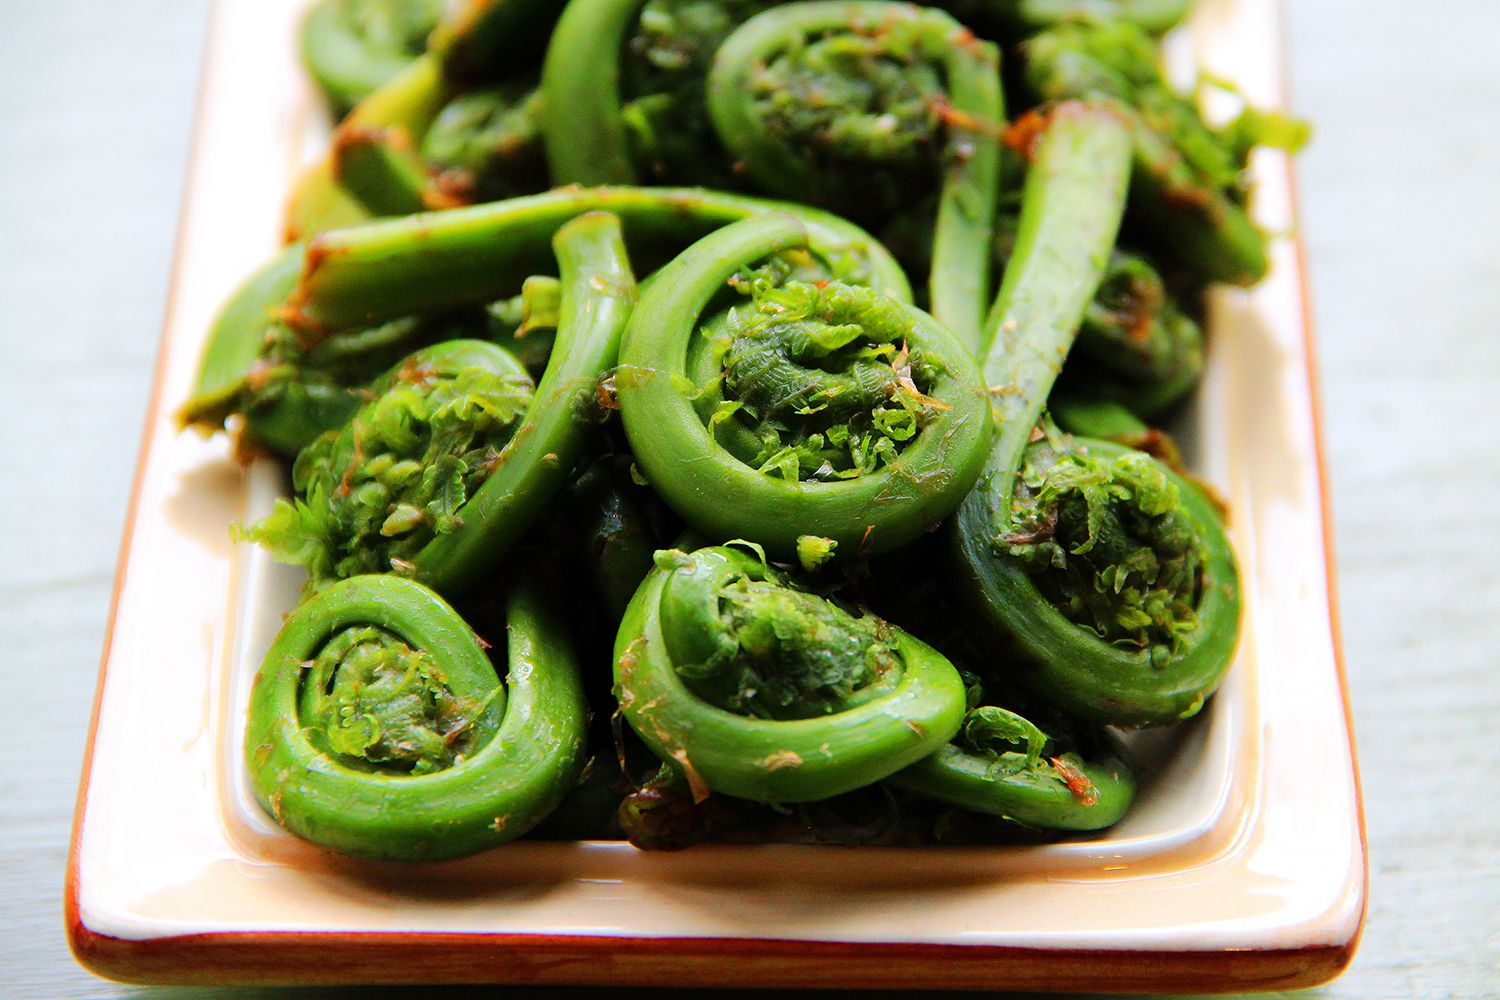 What Are Fiddlehead Ferns And How Are They Used